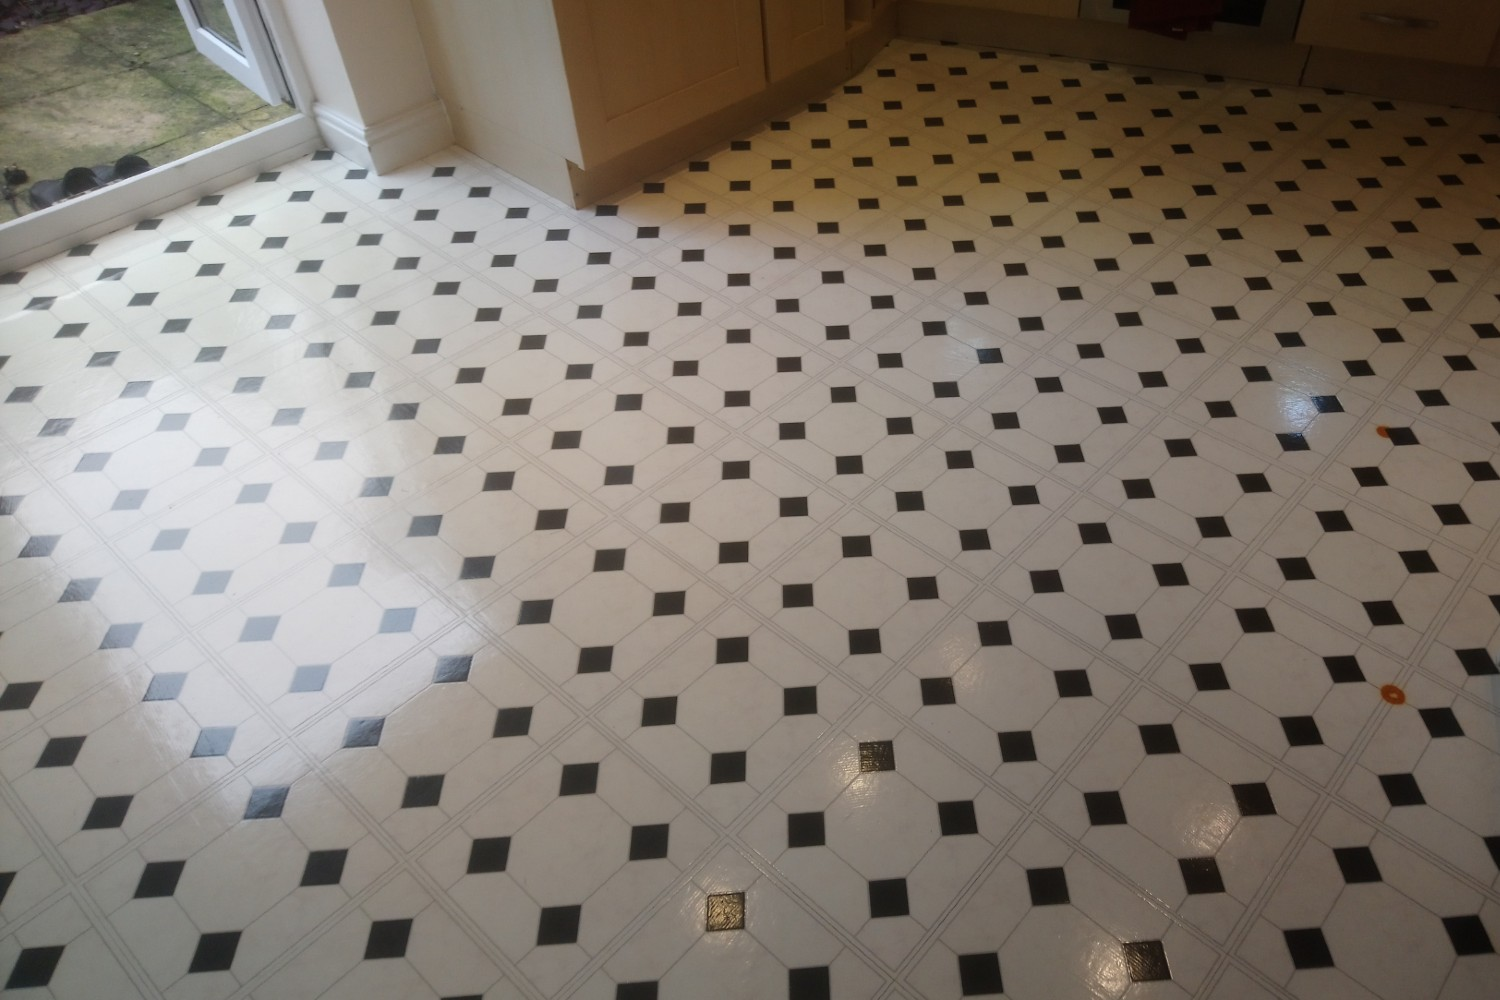 Kitchen Floor Cleaning Example